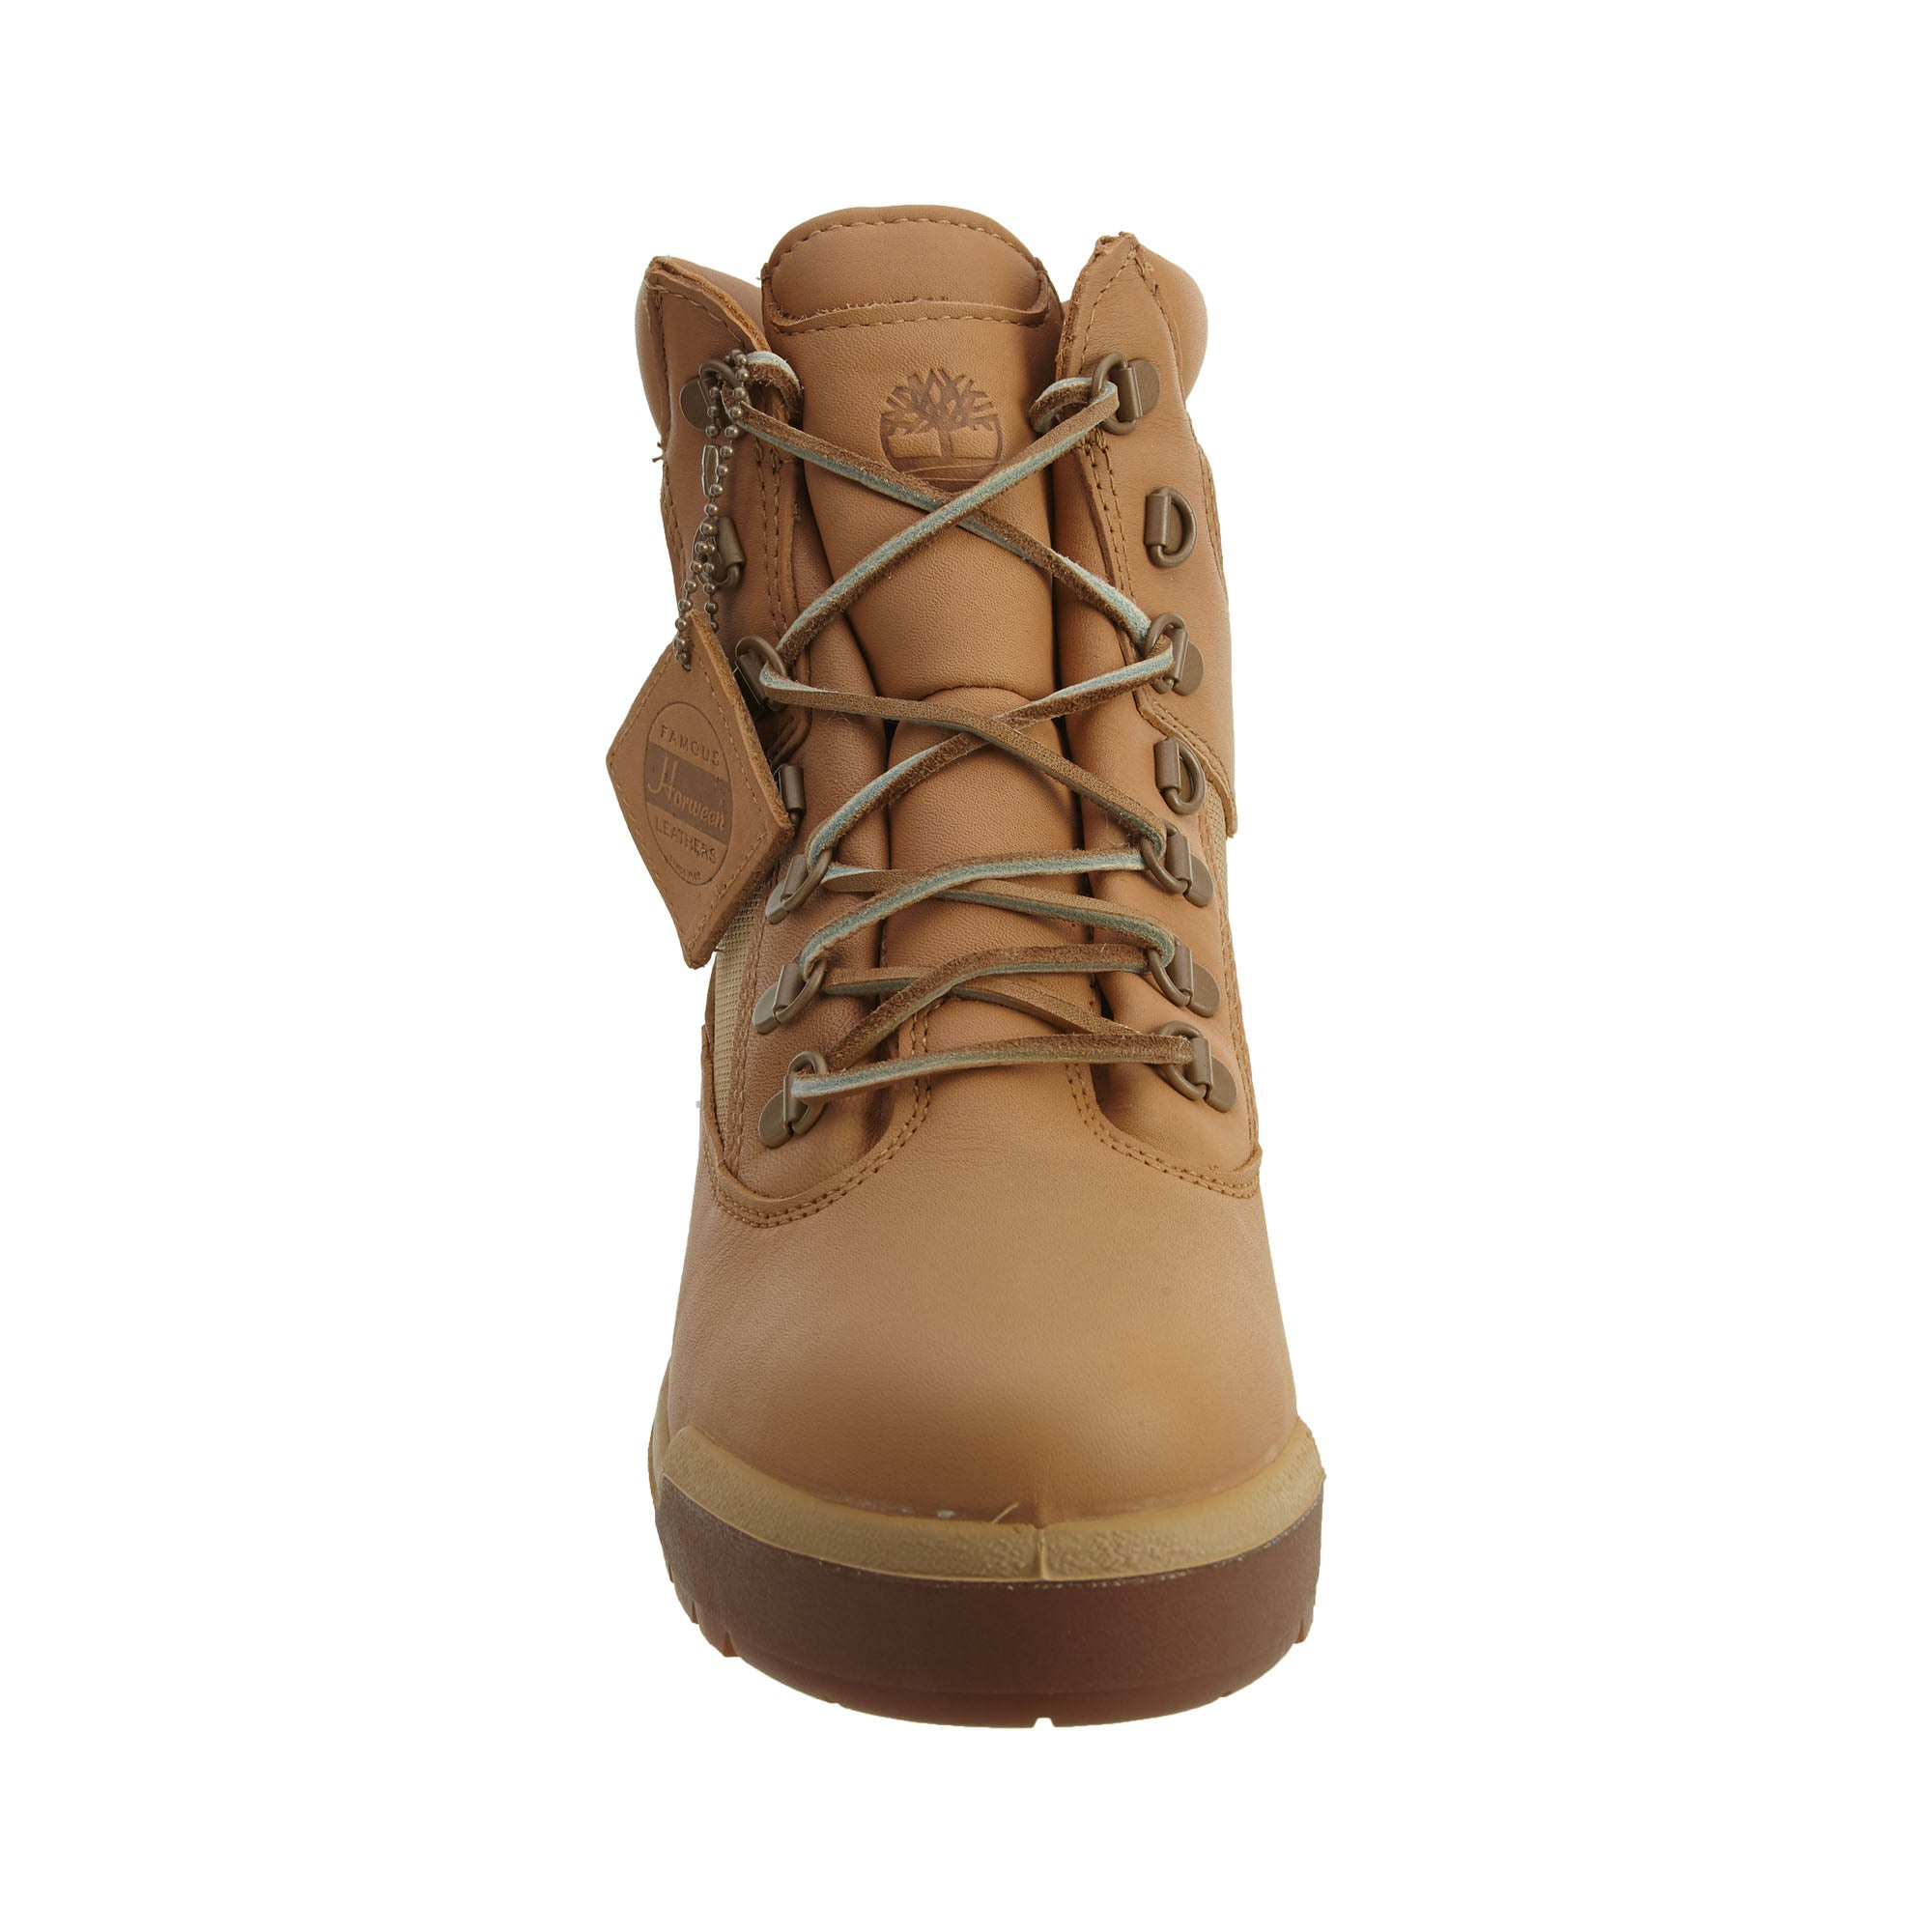 32d7c45ebcf6 Timberland Field Boot 6 Inch Waterproof Mens Style   Tb0a1kt7